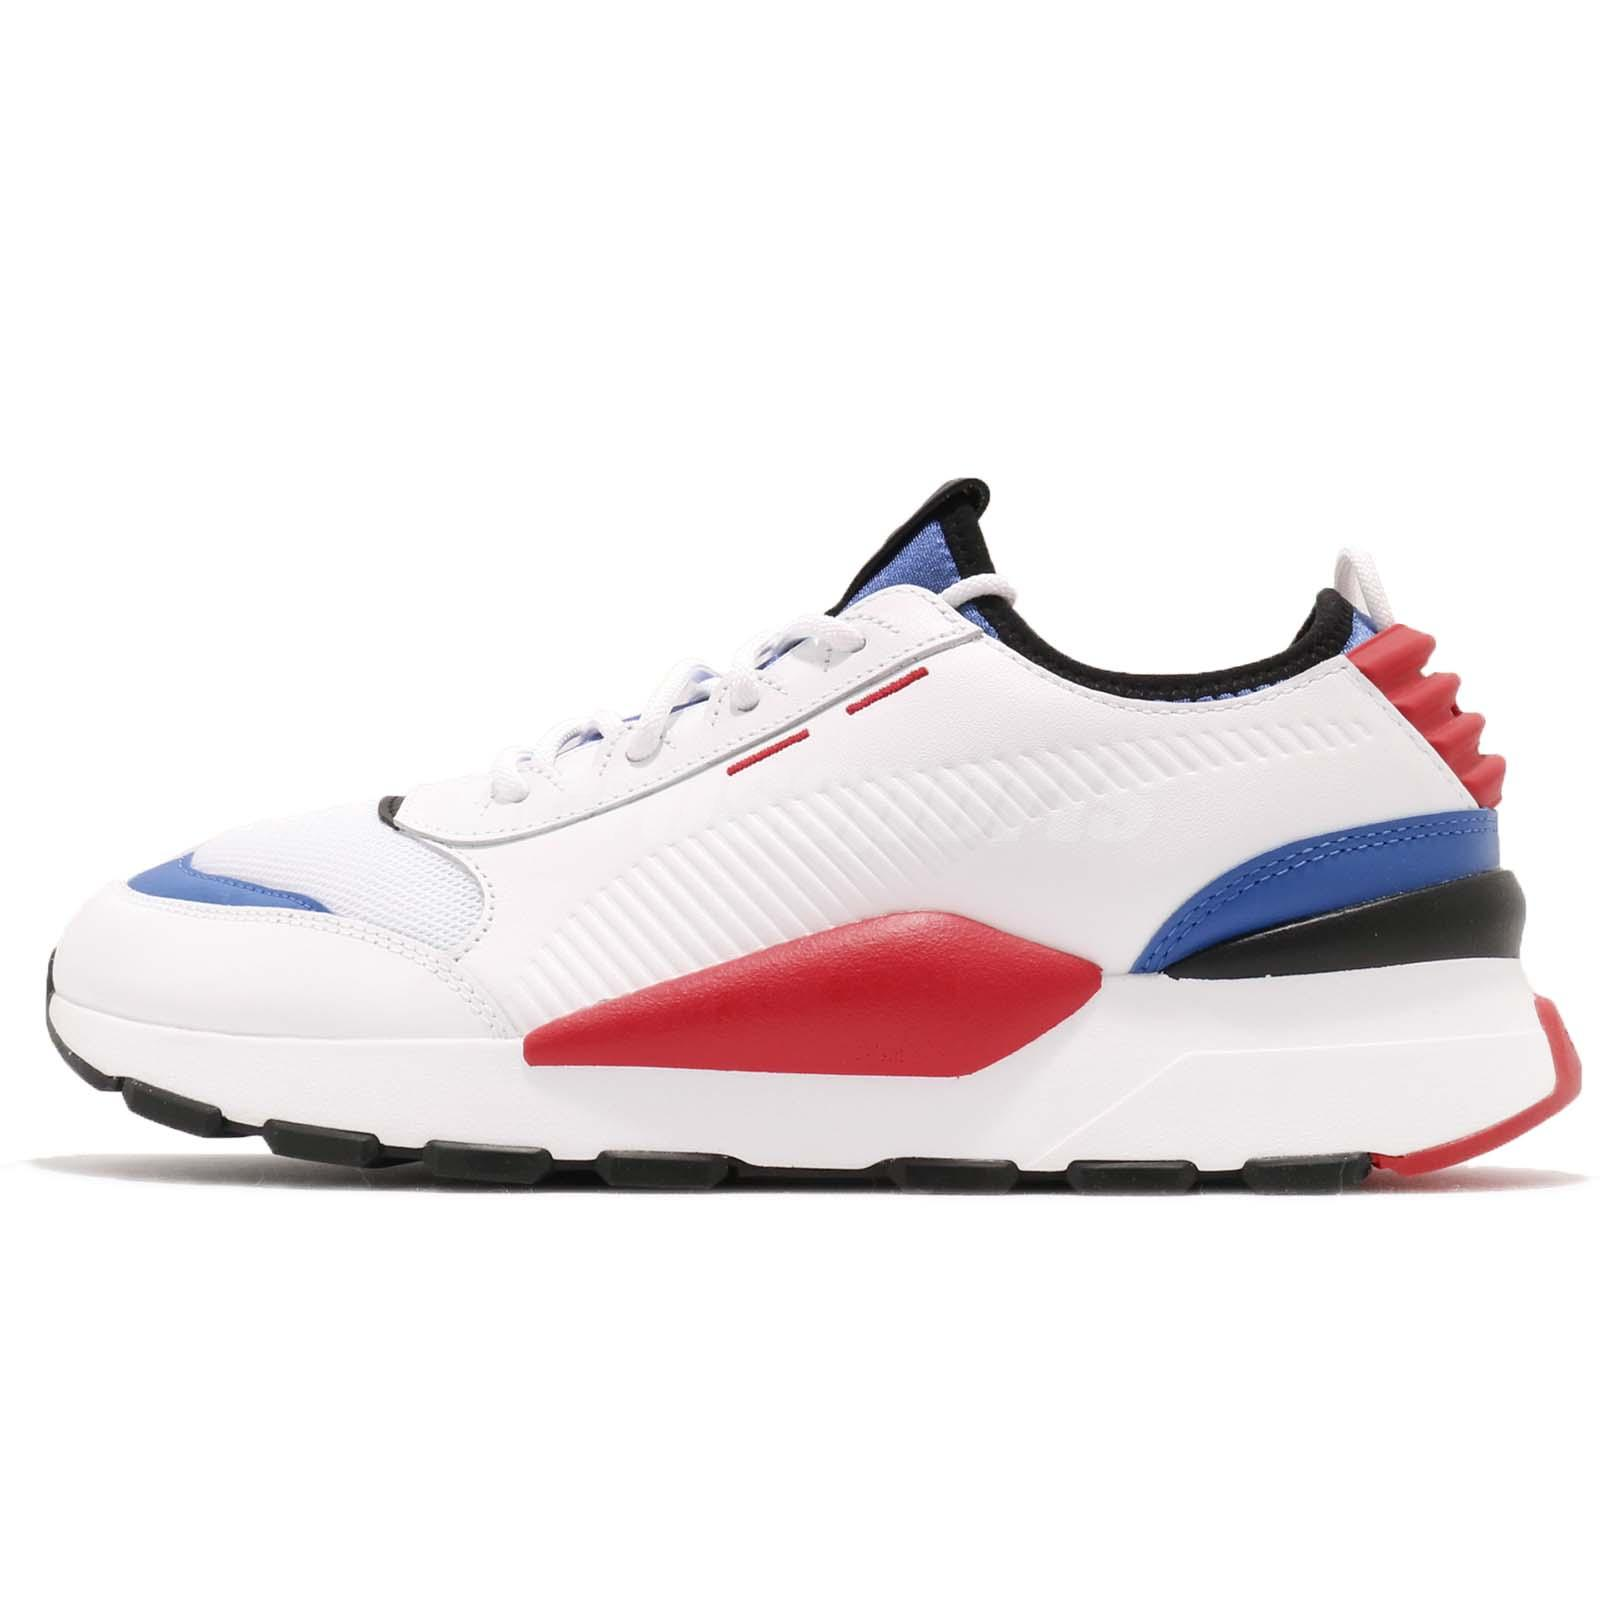 6c5730e8e97 Puma RS-0 Sound Play Running System White Blue Red Men Lifestyle Shoes  366890-01